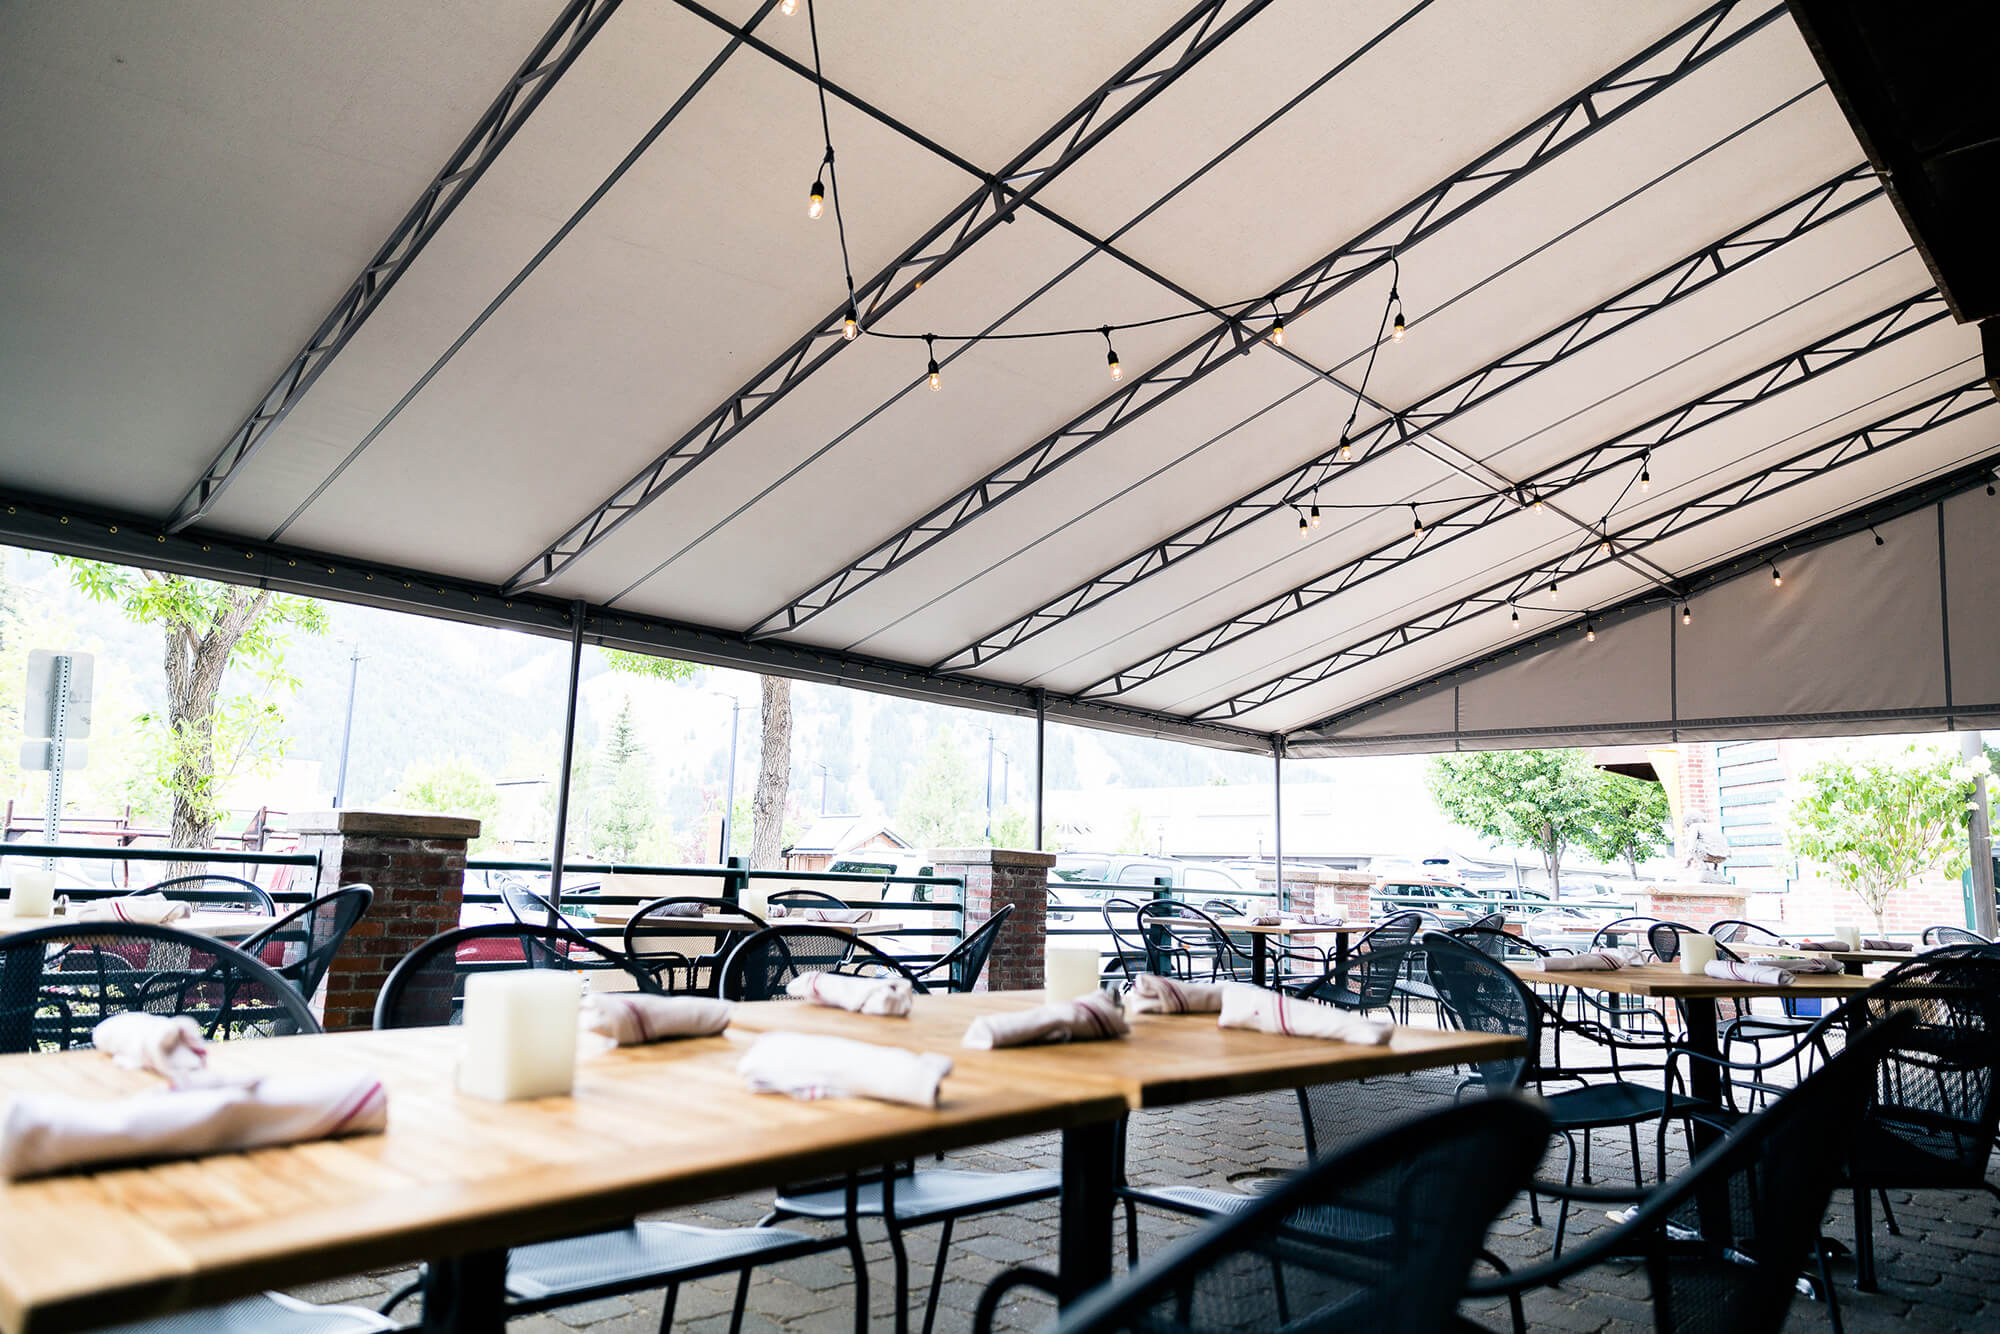 Fixed frame awning with beige Sunbrella fabric shading restaurant patio